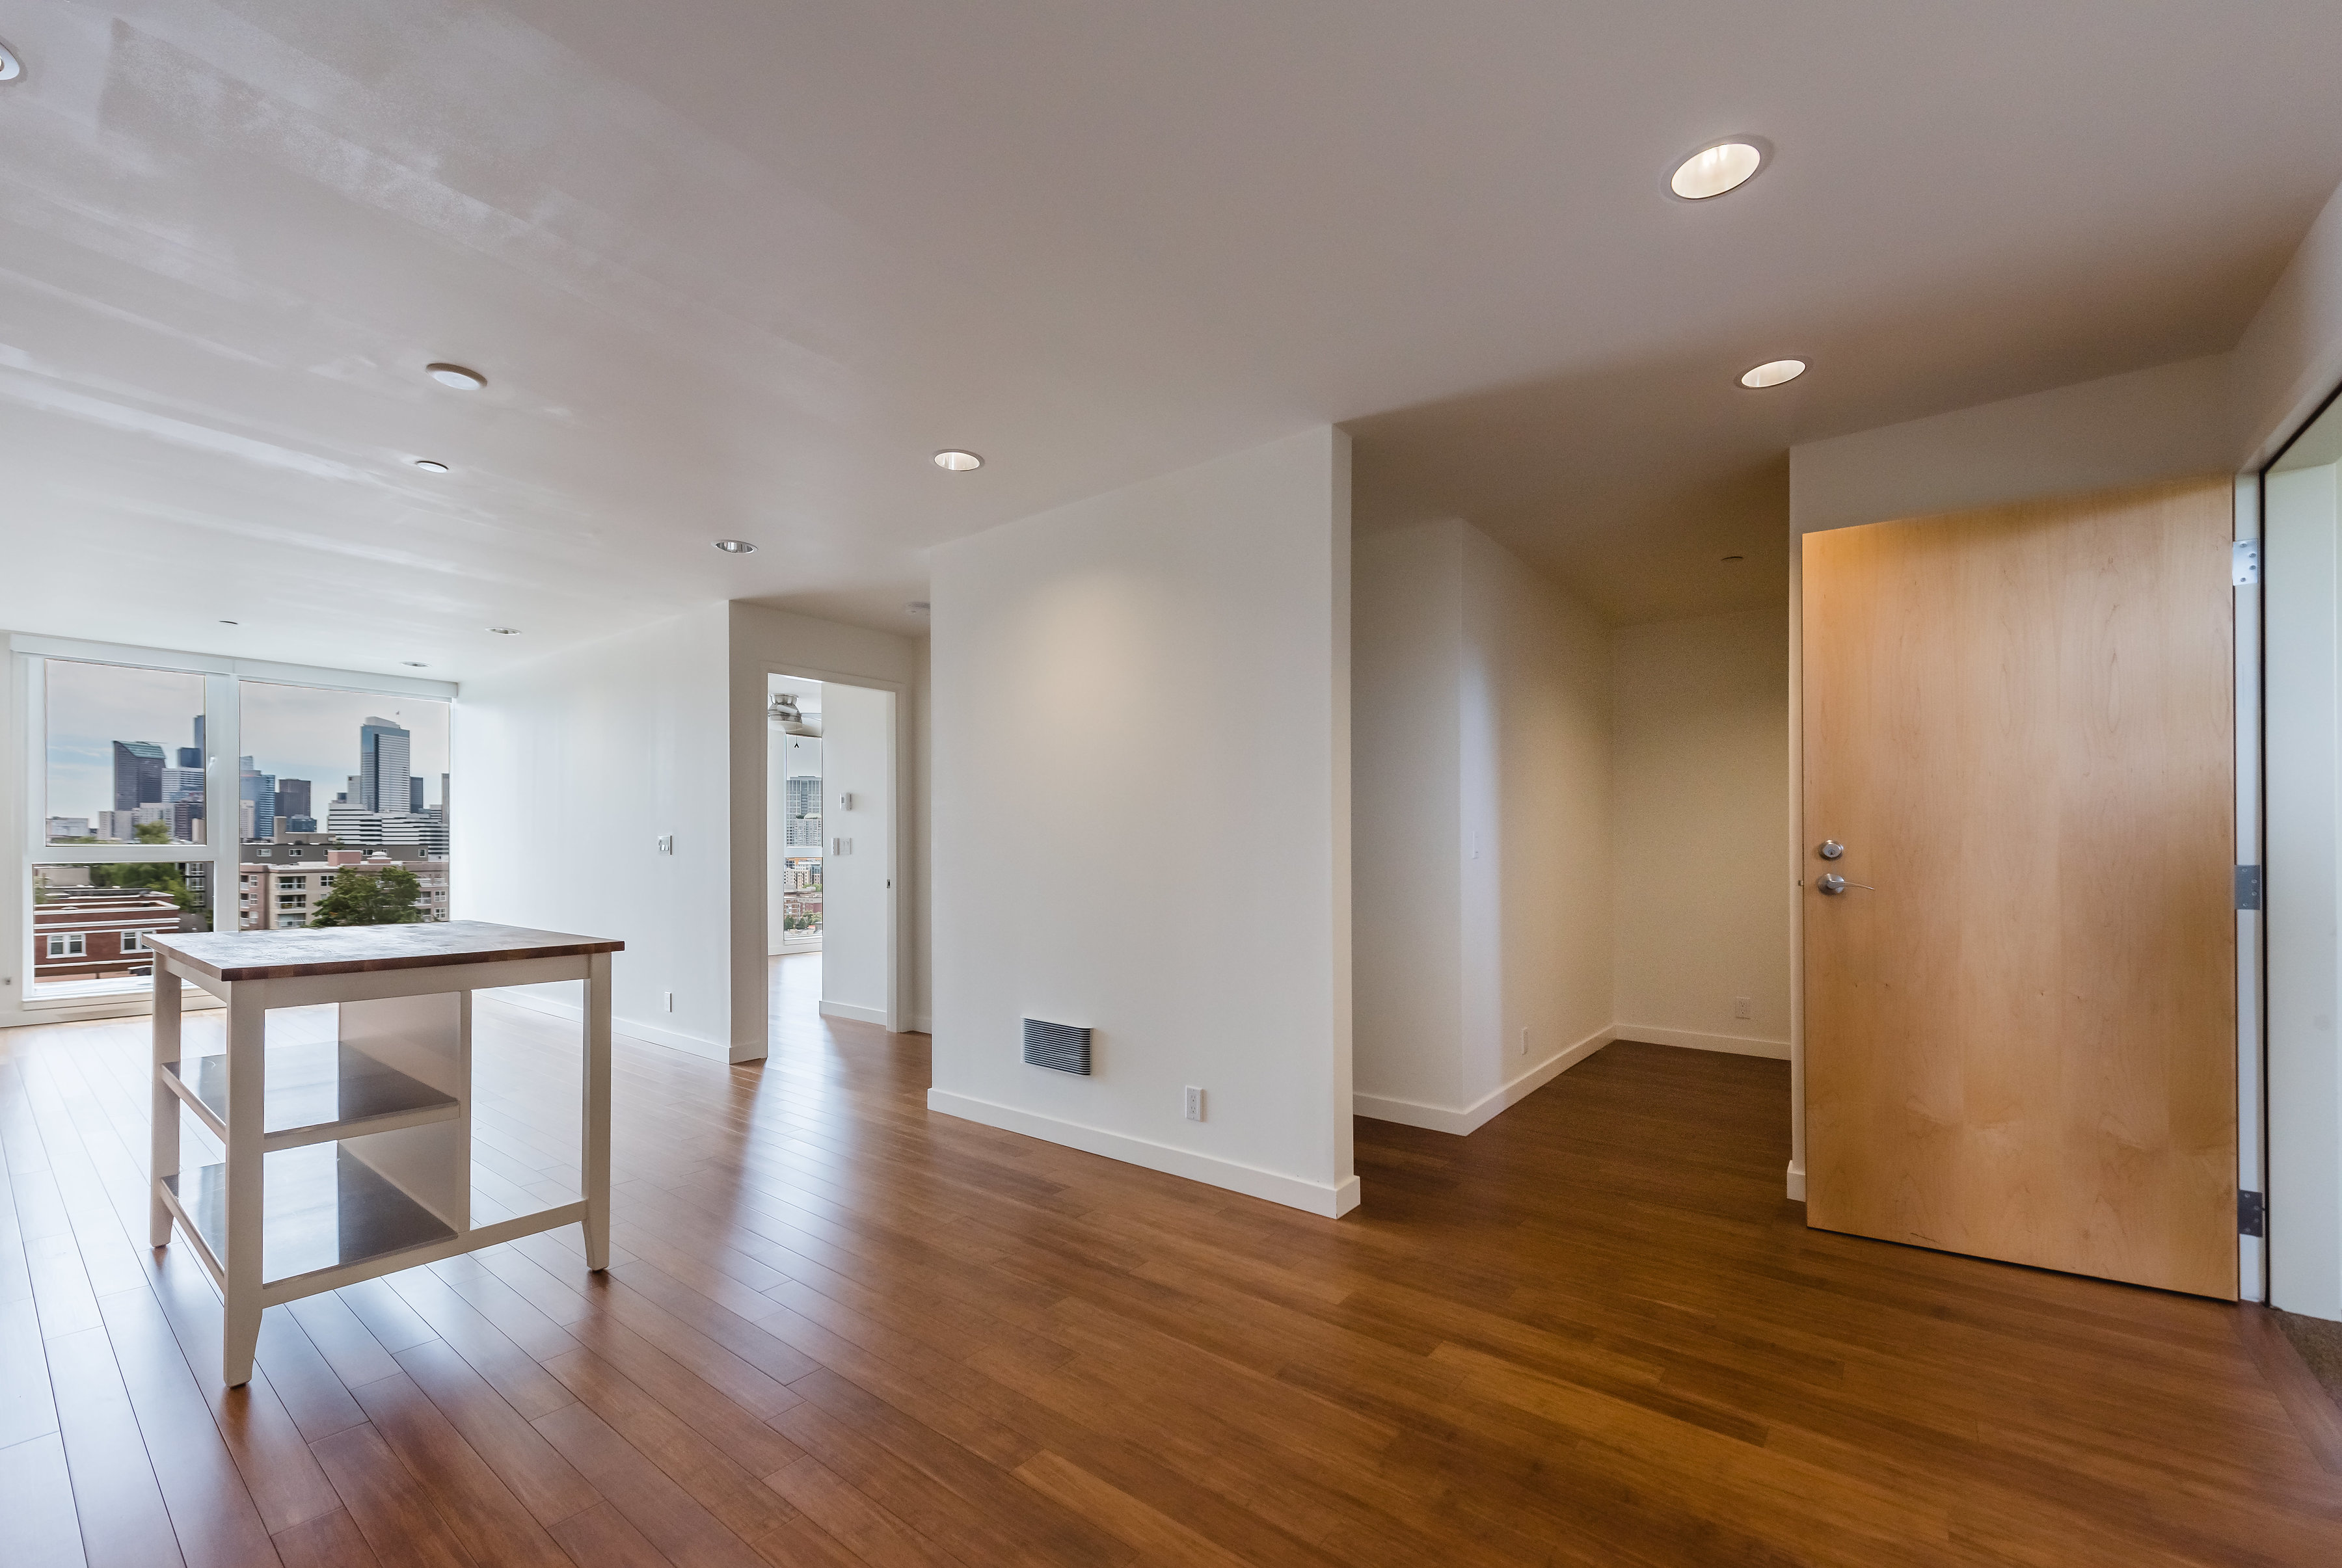 Spacious Floor Plans At Belroy Apartments In Seattle, WA